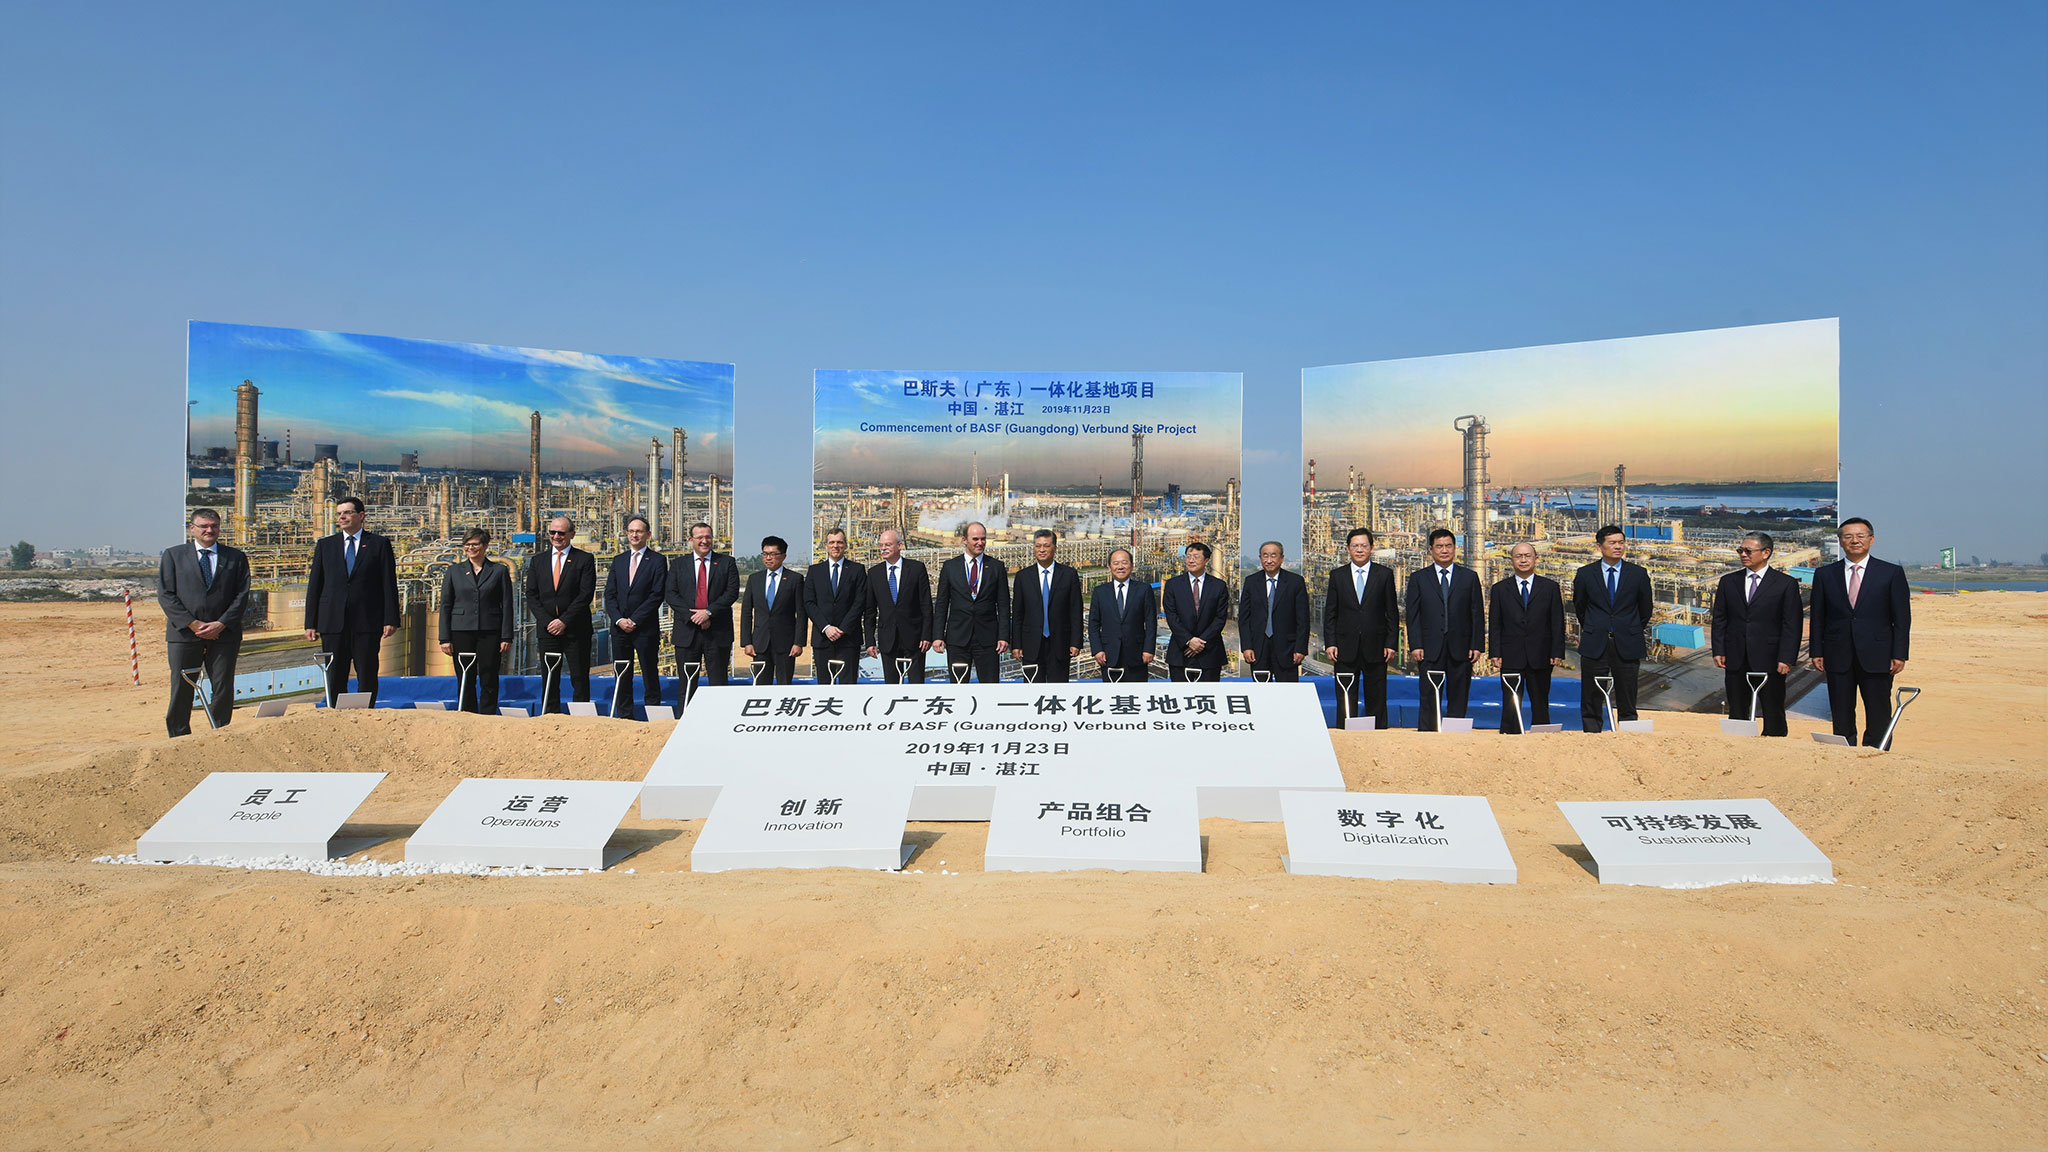 BASF breaks ground on $10bn China chemical complex